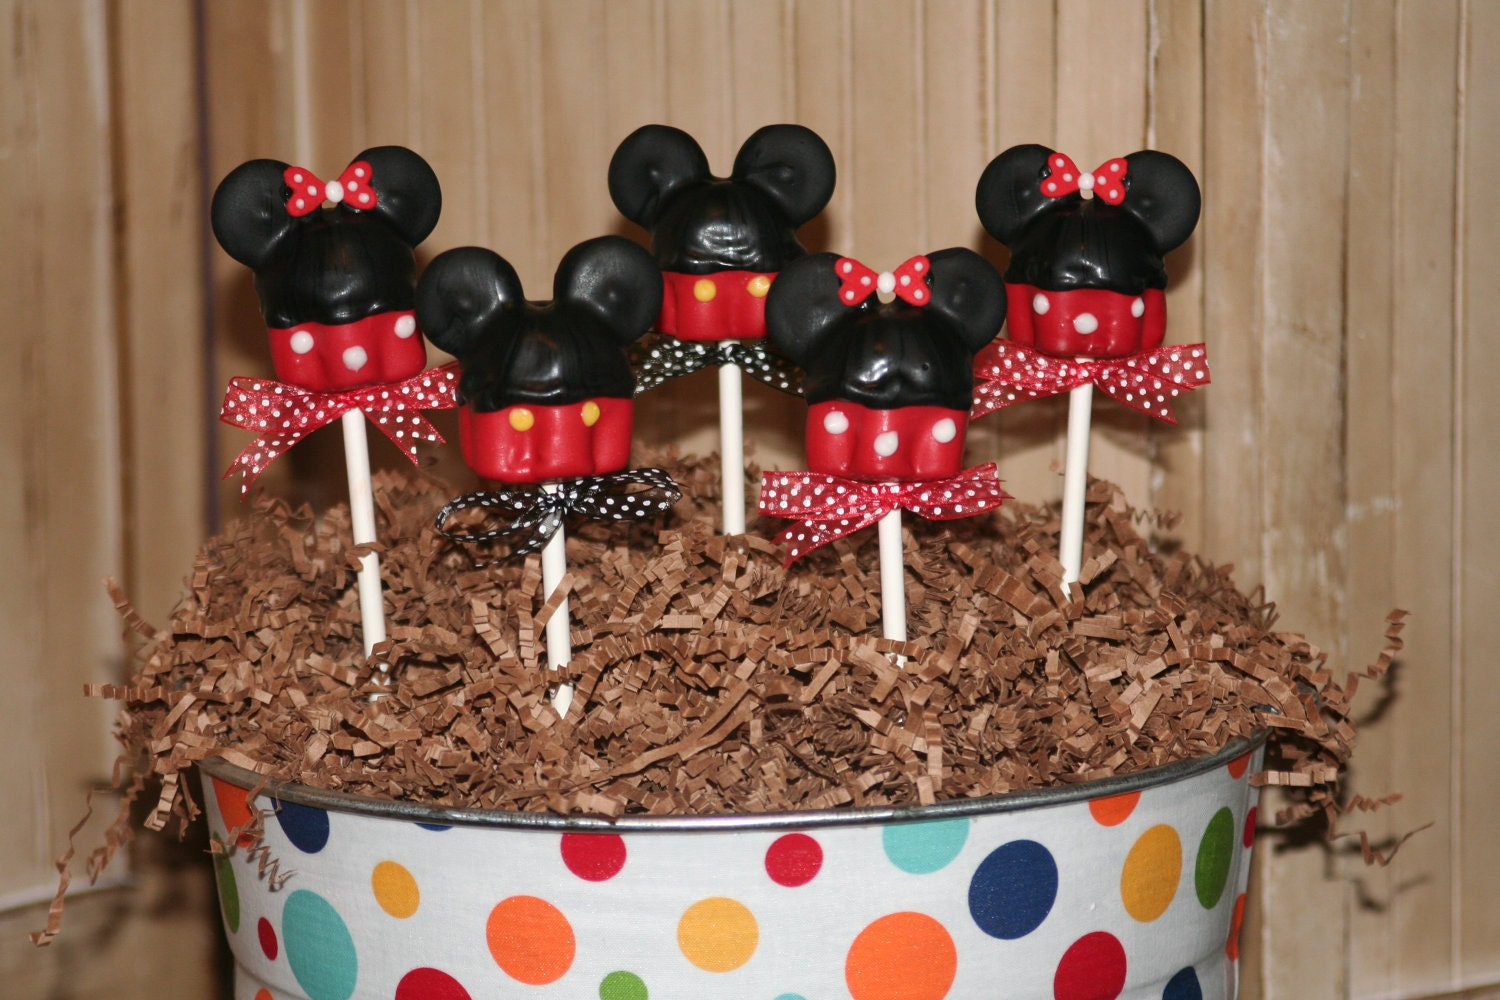 With food tea parties lend themselves quite nicely to disney themes